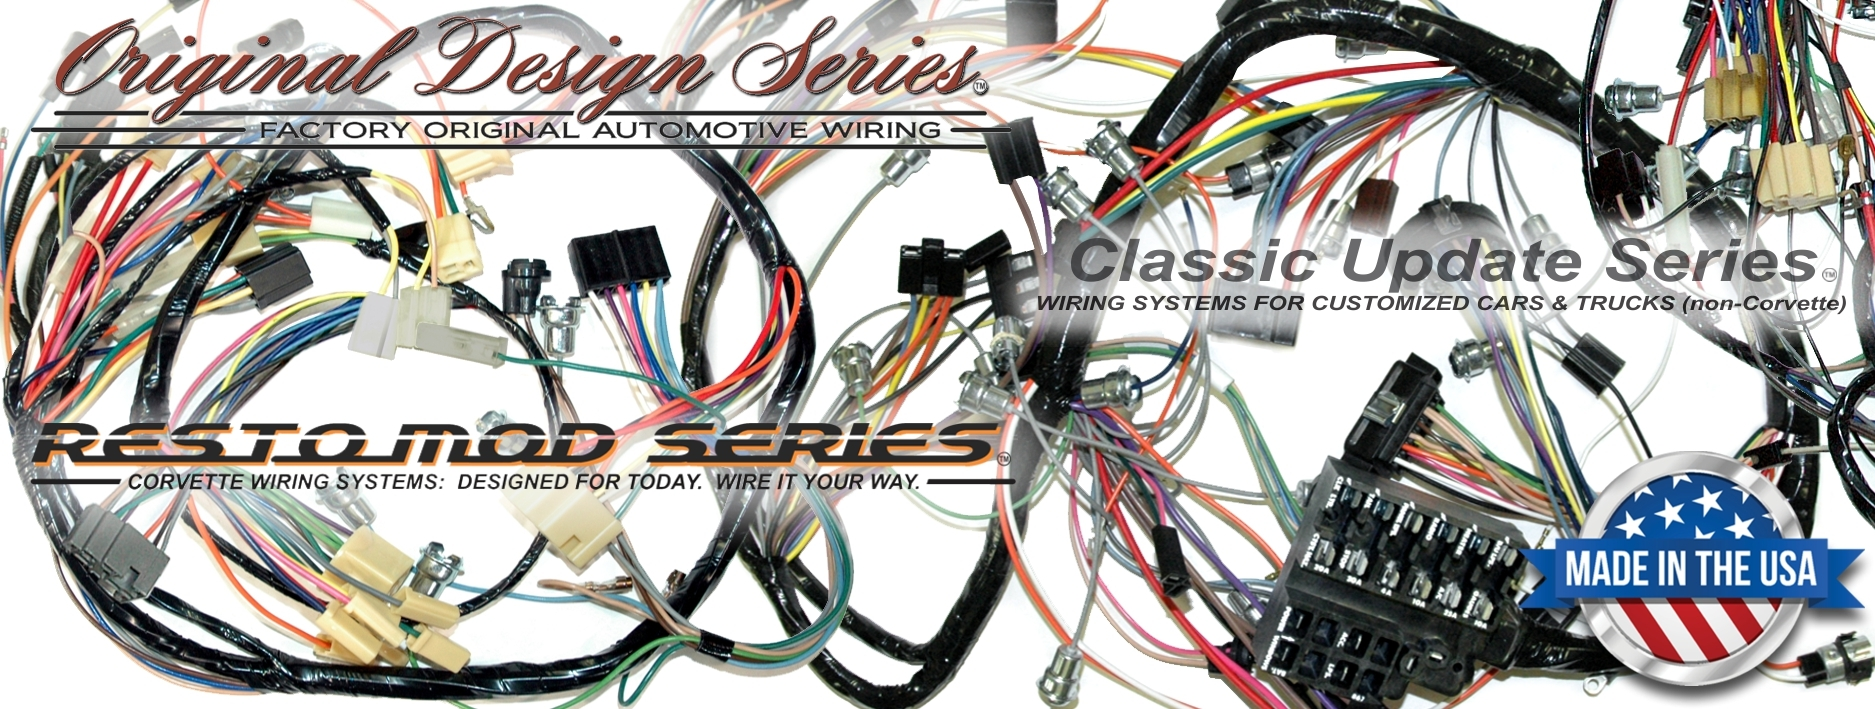 exact oem reproduction wiring harnesses and restomod